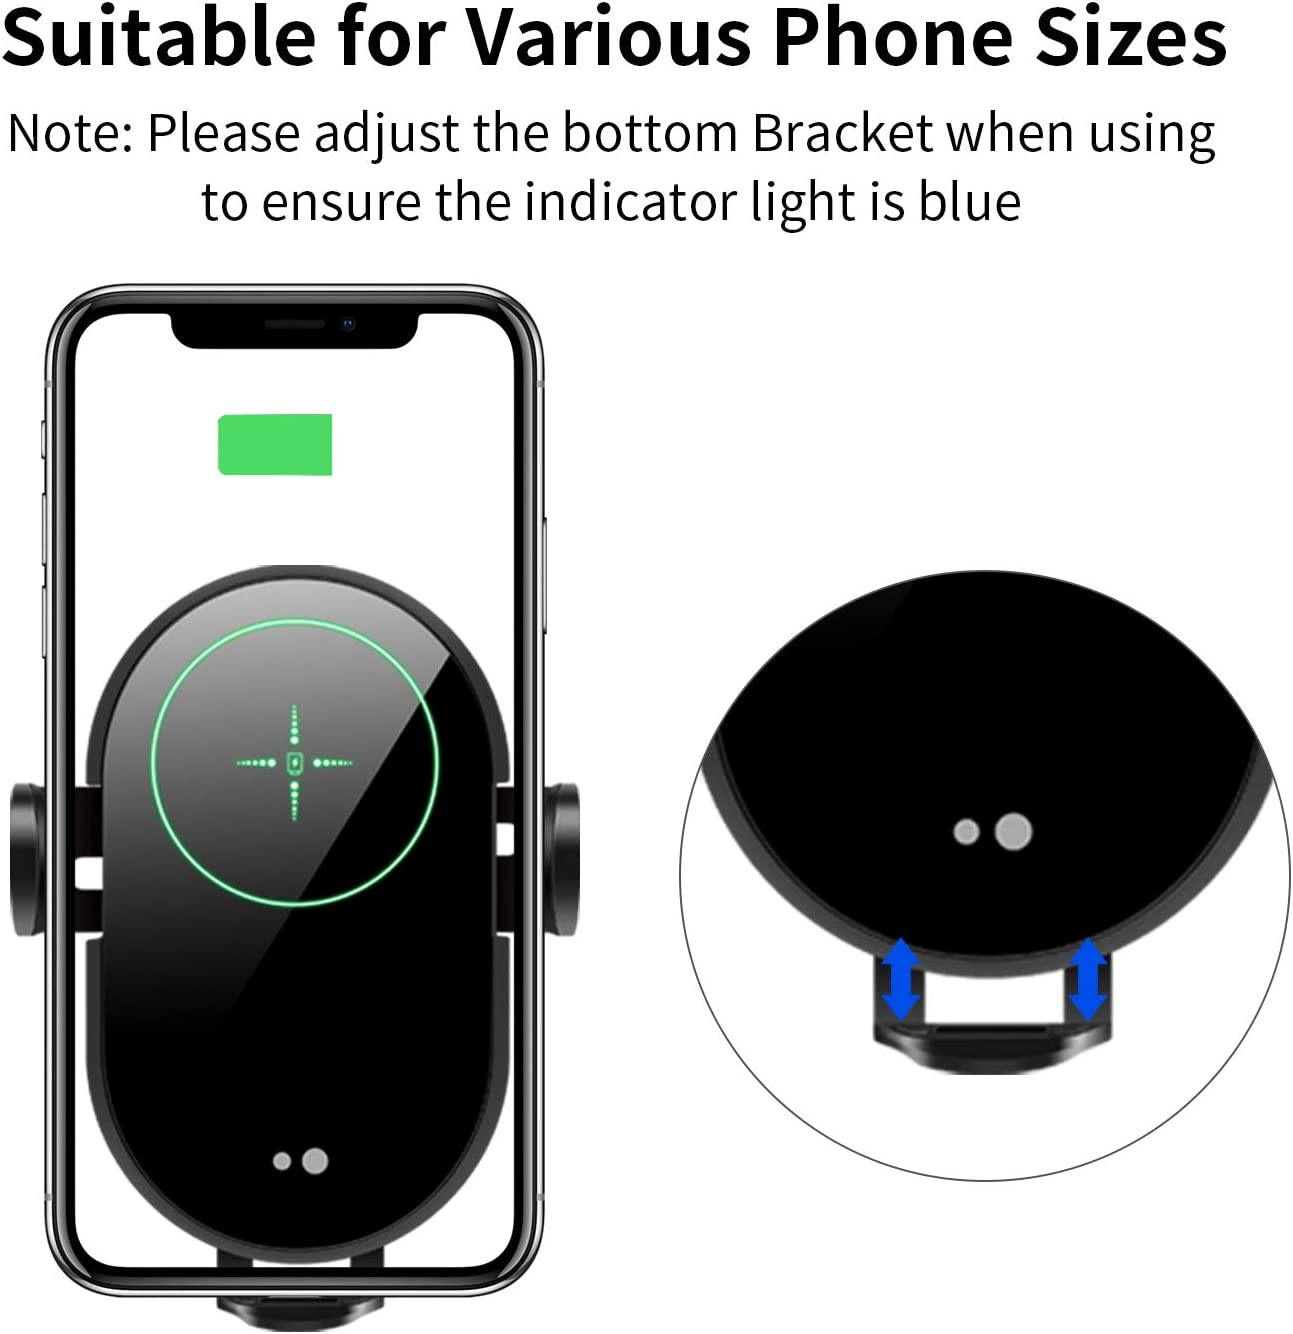 Samsung Galaxy S10//S9//S8 Note 10//9 Upgrade 15W Quick Charging Auto Sensing Stretchable Mobile Phone Holder Feliztrip in-car Wireless Charger Compatible with iPhone 11//11 Pro Max//Xs Max//Xs//XR//X//8